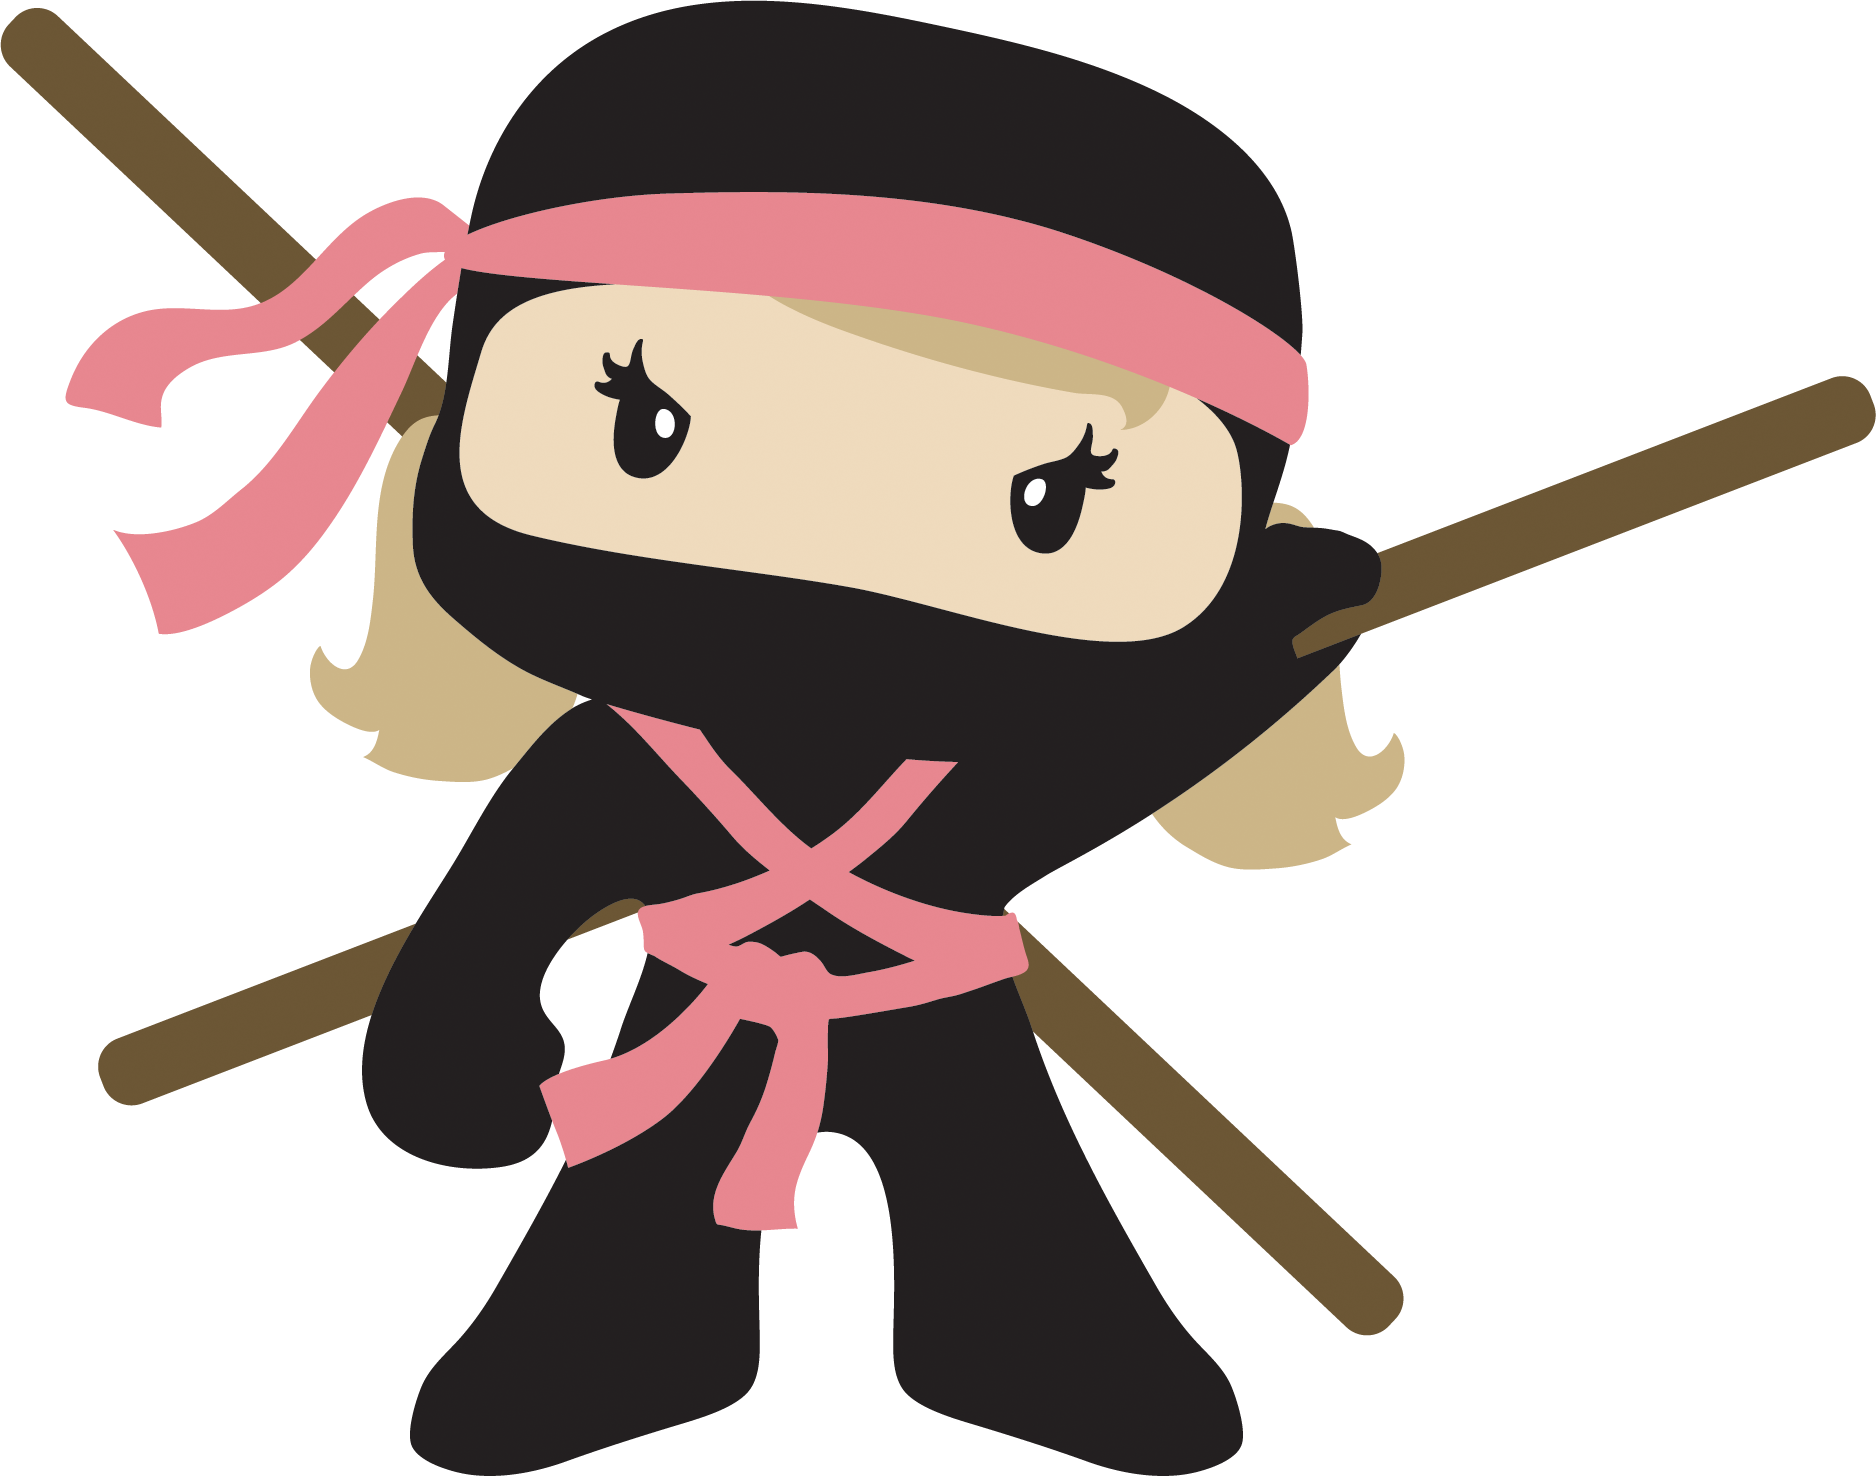 Ninja clipart two, Ninja two Transparent FREE for download.